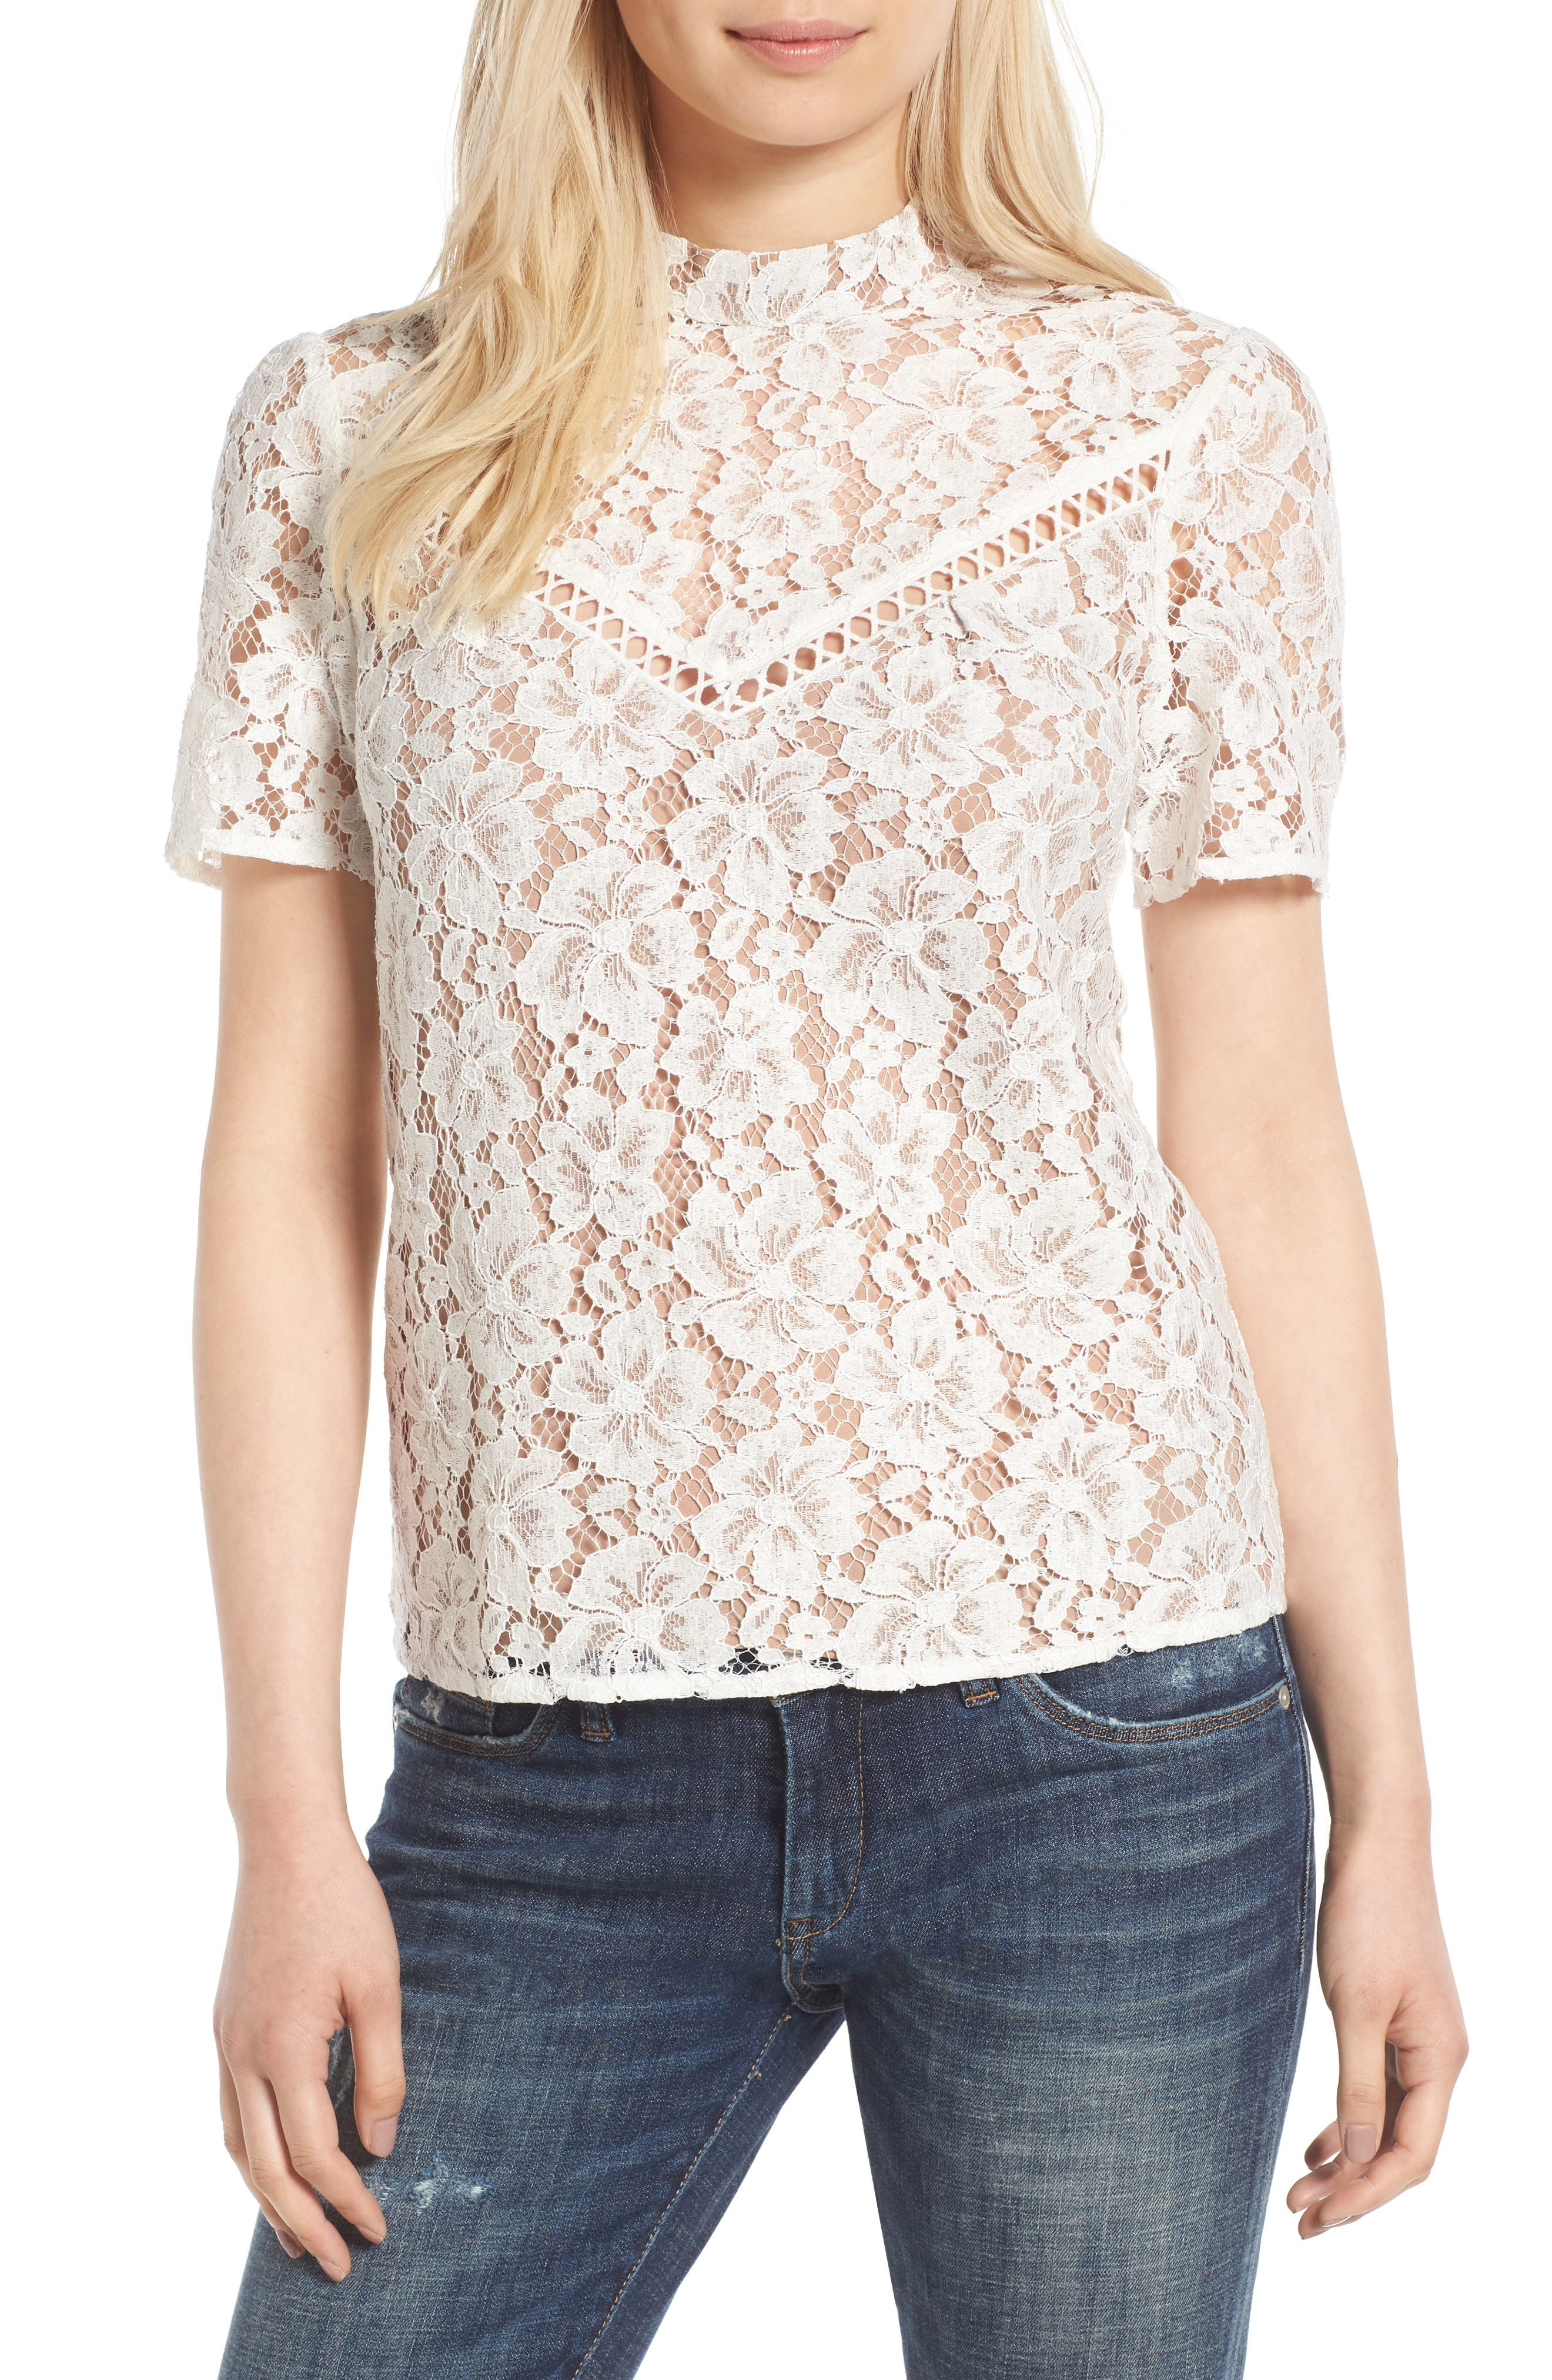 Alternate Image 1 Selected - WAYF Greyson Lace Top